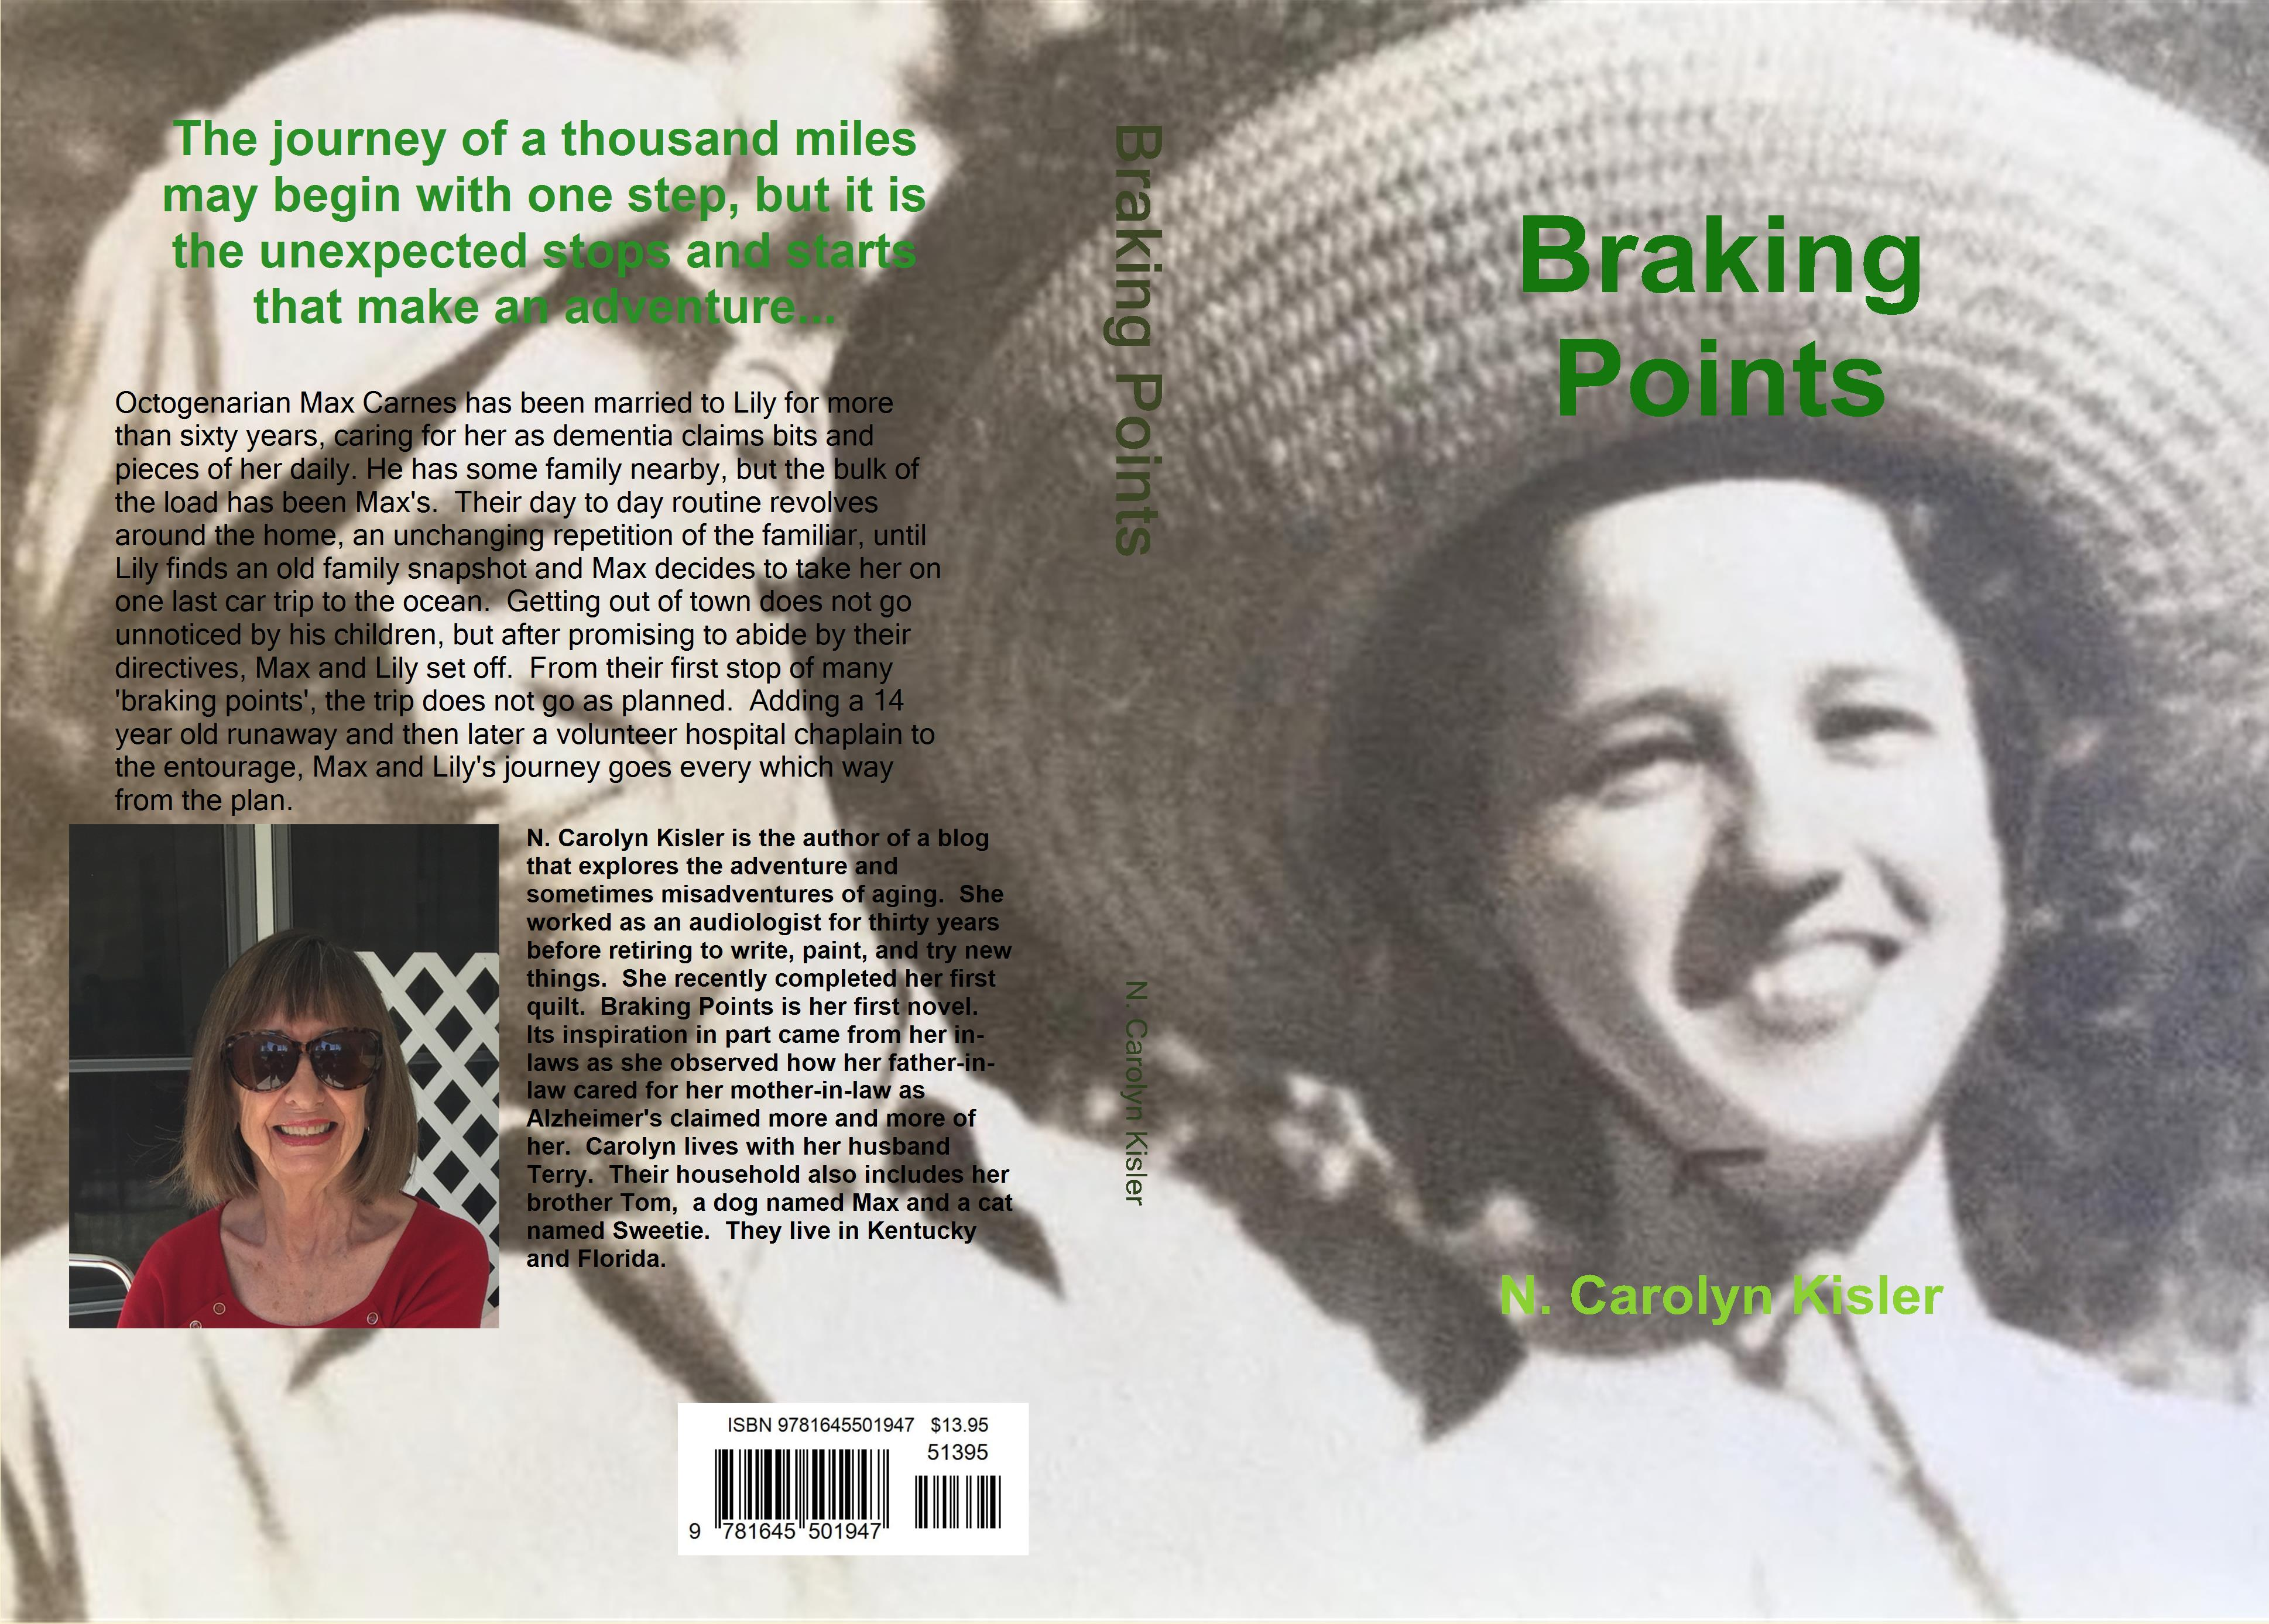 Braking Points cover image